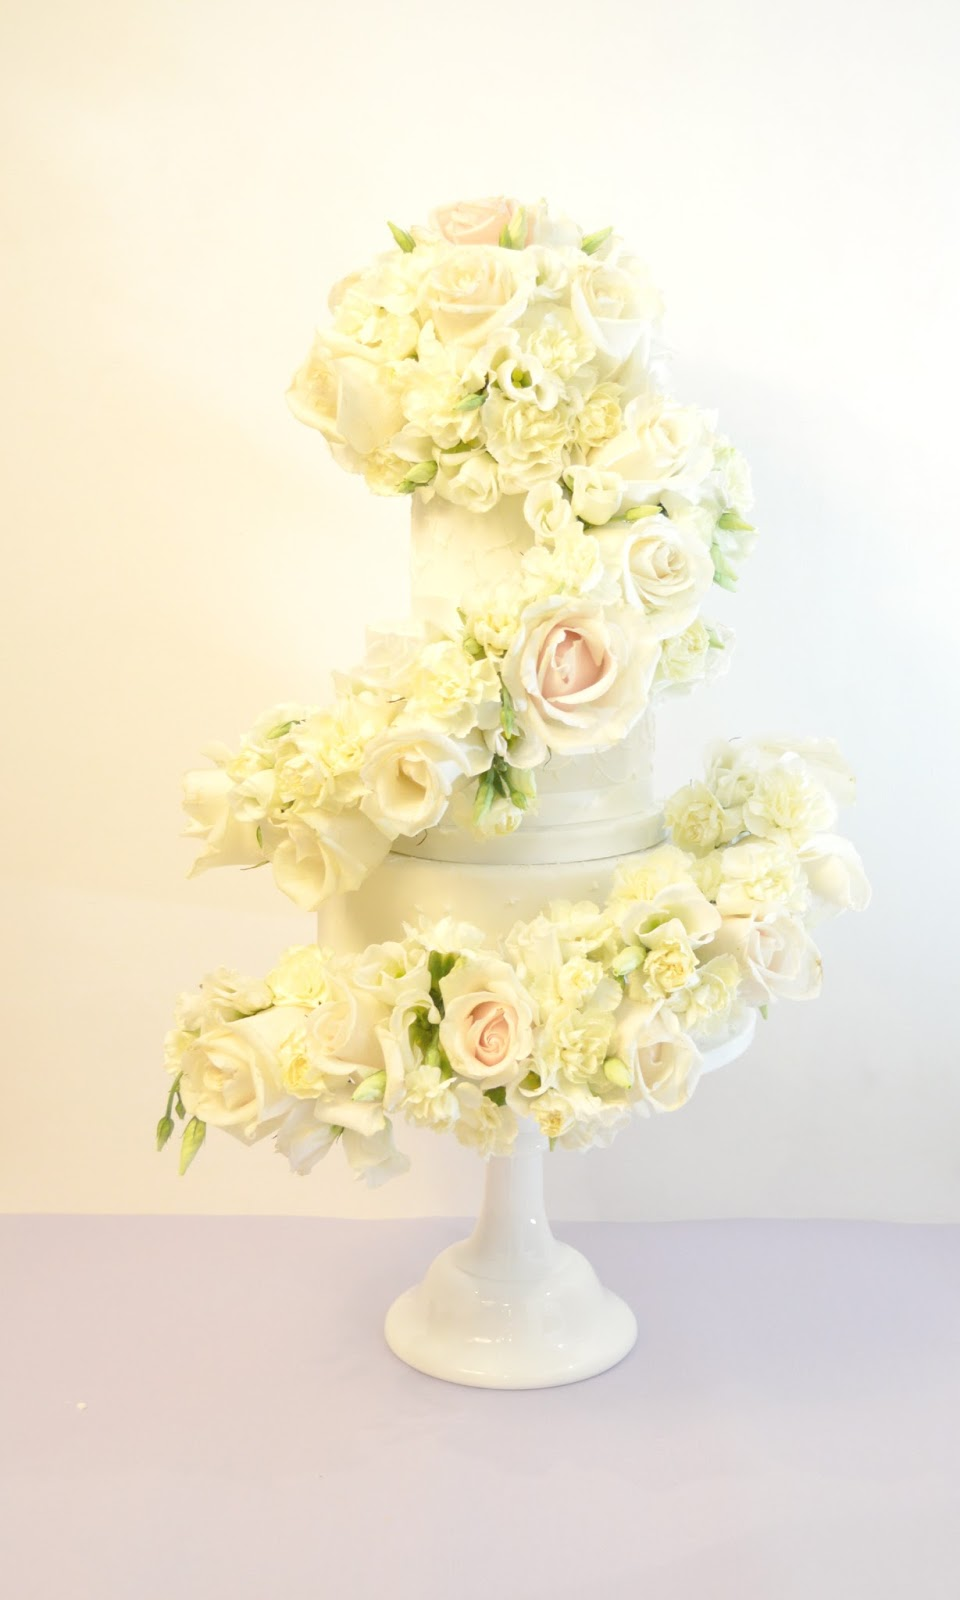 Cherie Kelly's Ivory Rose Cascade Wedding Cake